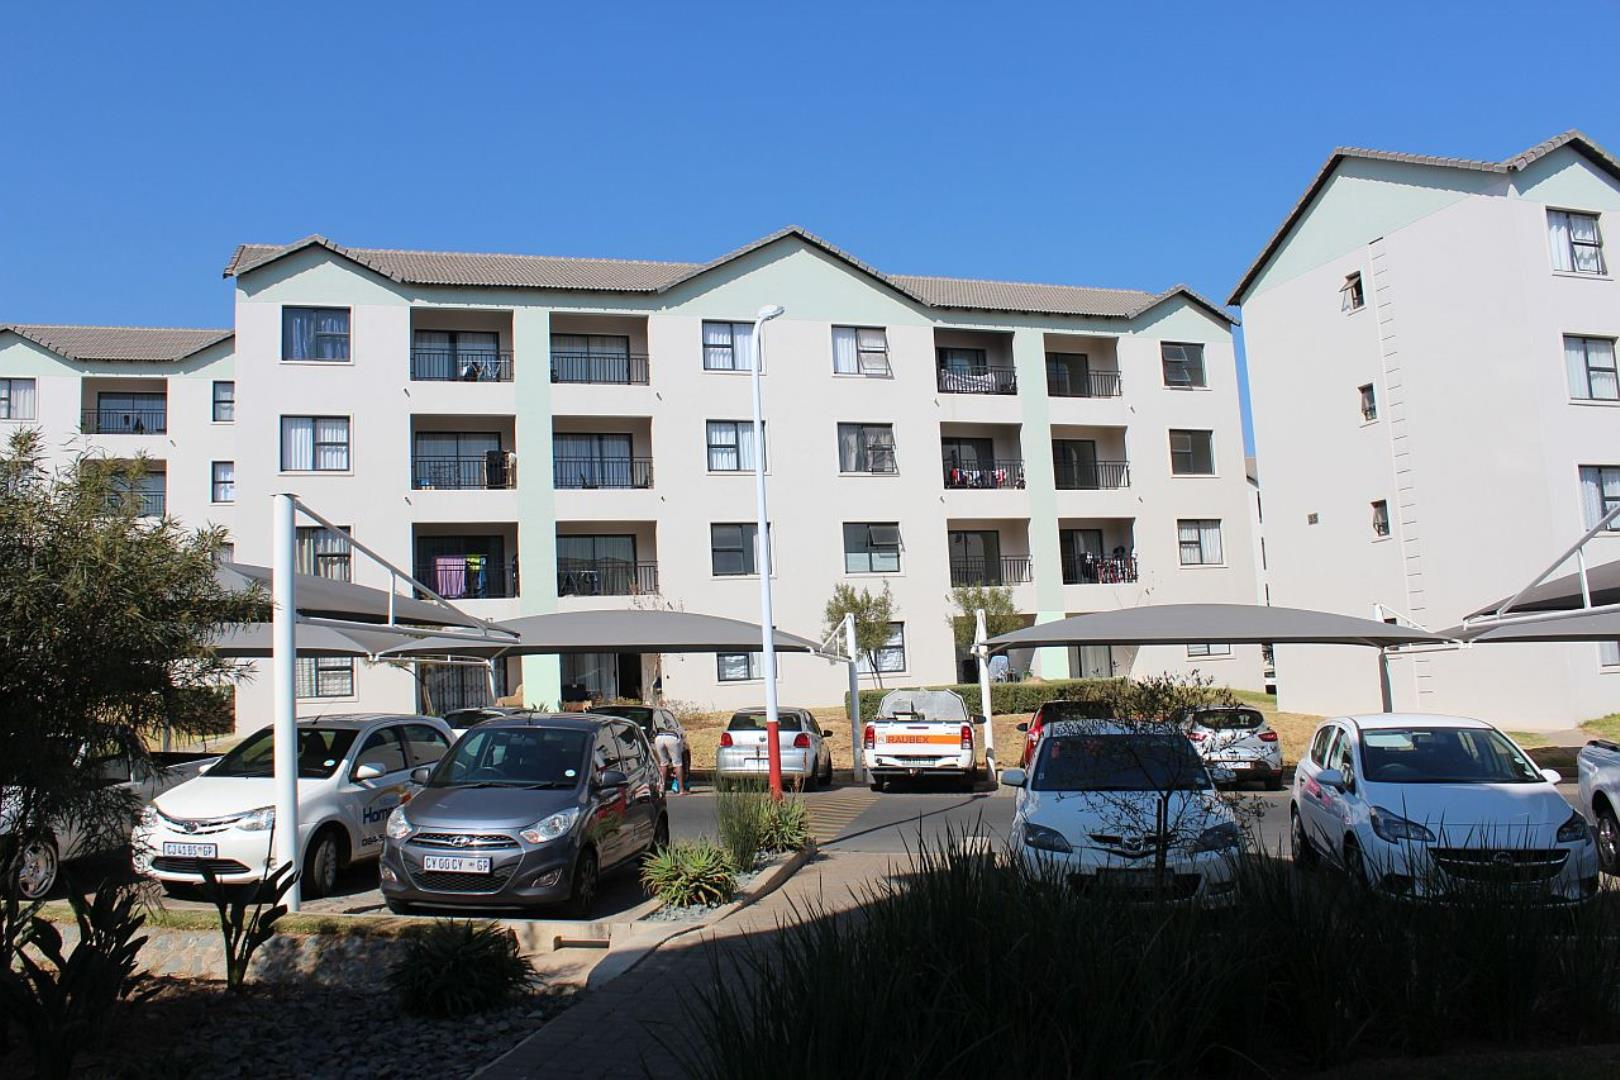 2 Bedroom Apartment for Sale in Erand Gardens, Midrand - Gauteng